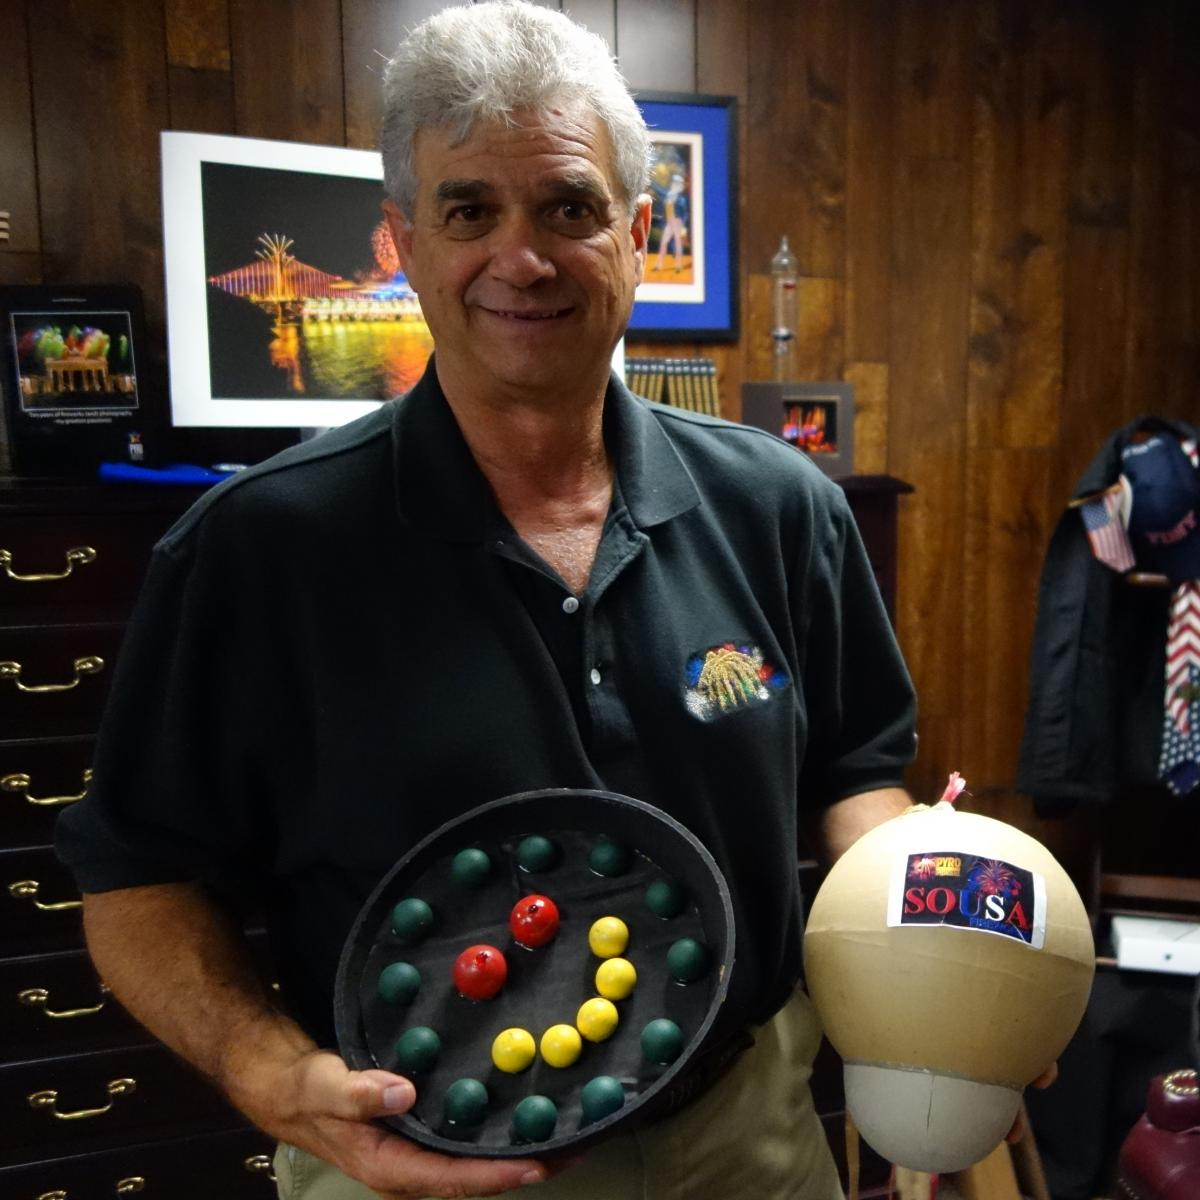 Jim Souza, president of Pyro Spectaculars, poses with samples of some of the fireworks he's planning for this year's Macy's show.